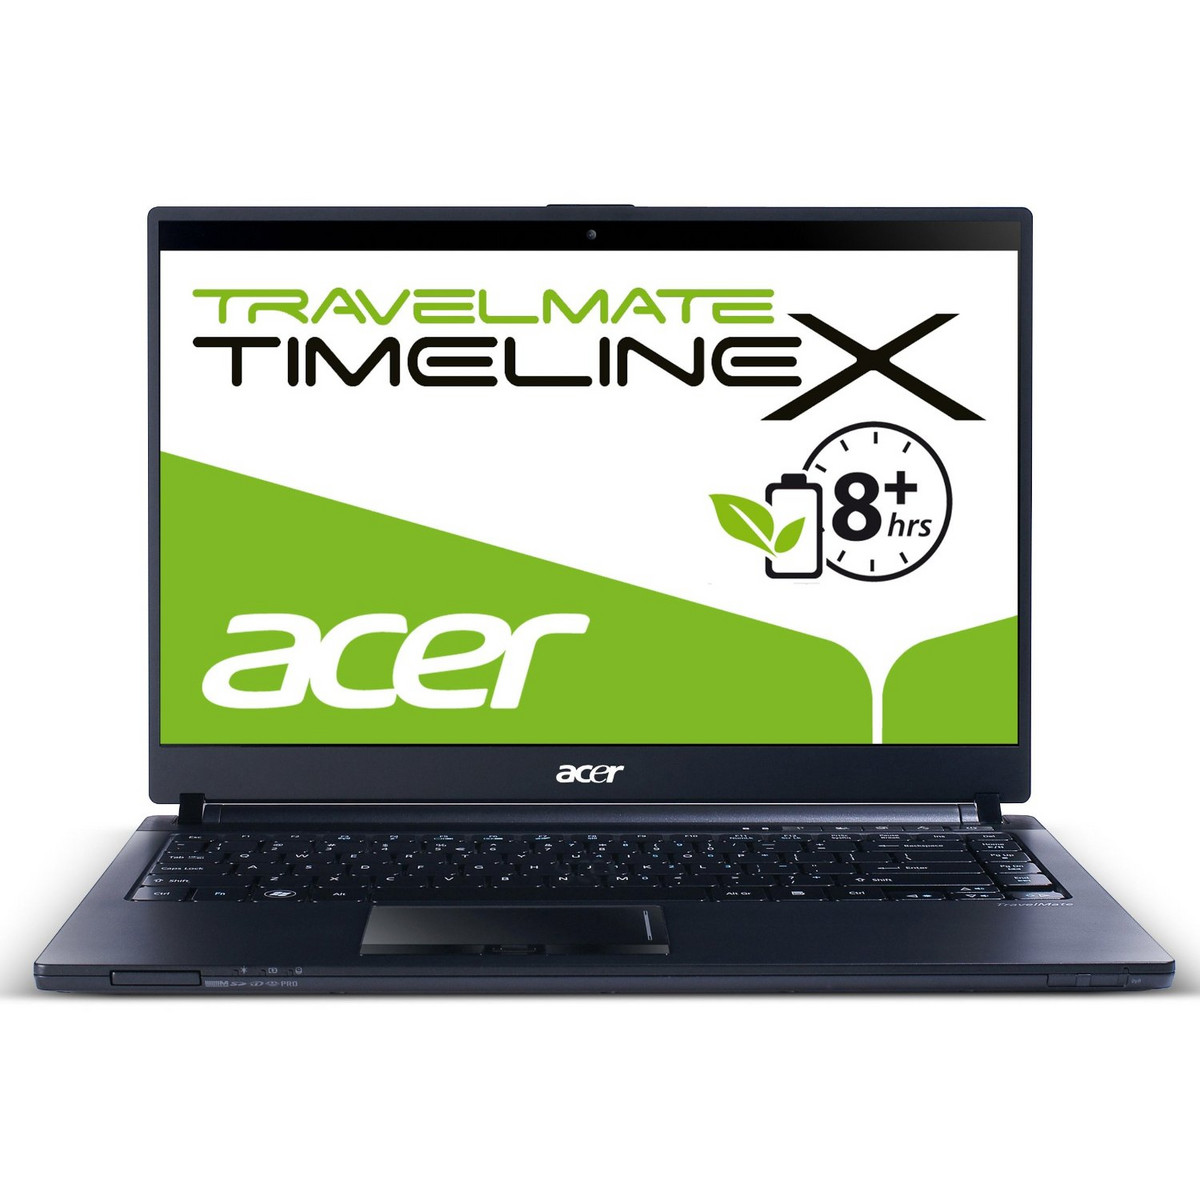 ACER TRAVELMATE 8481G DRIVERS FOR MAC DOWNLOAD